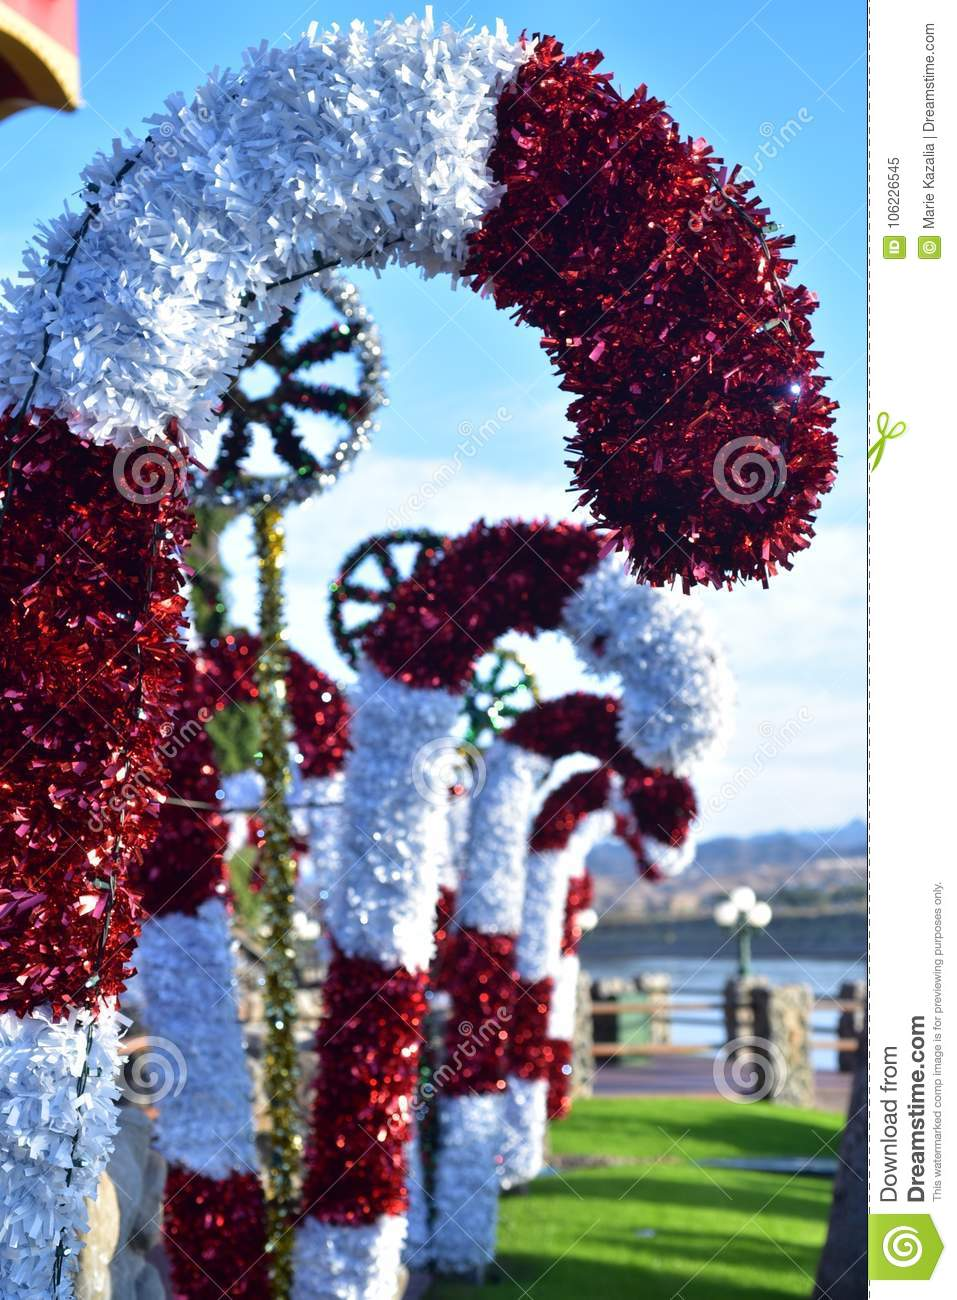 outdoor christmas decorations with large candy canes and gods eyes in south west desert landscape with palm trees in background in arizona usa